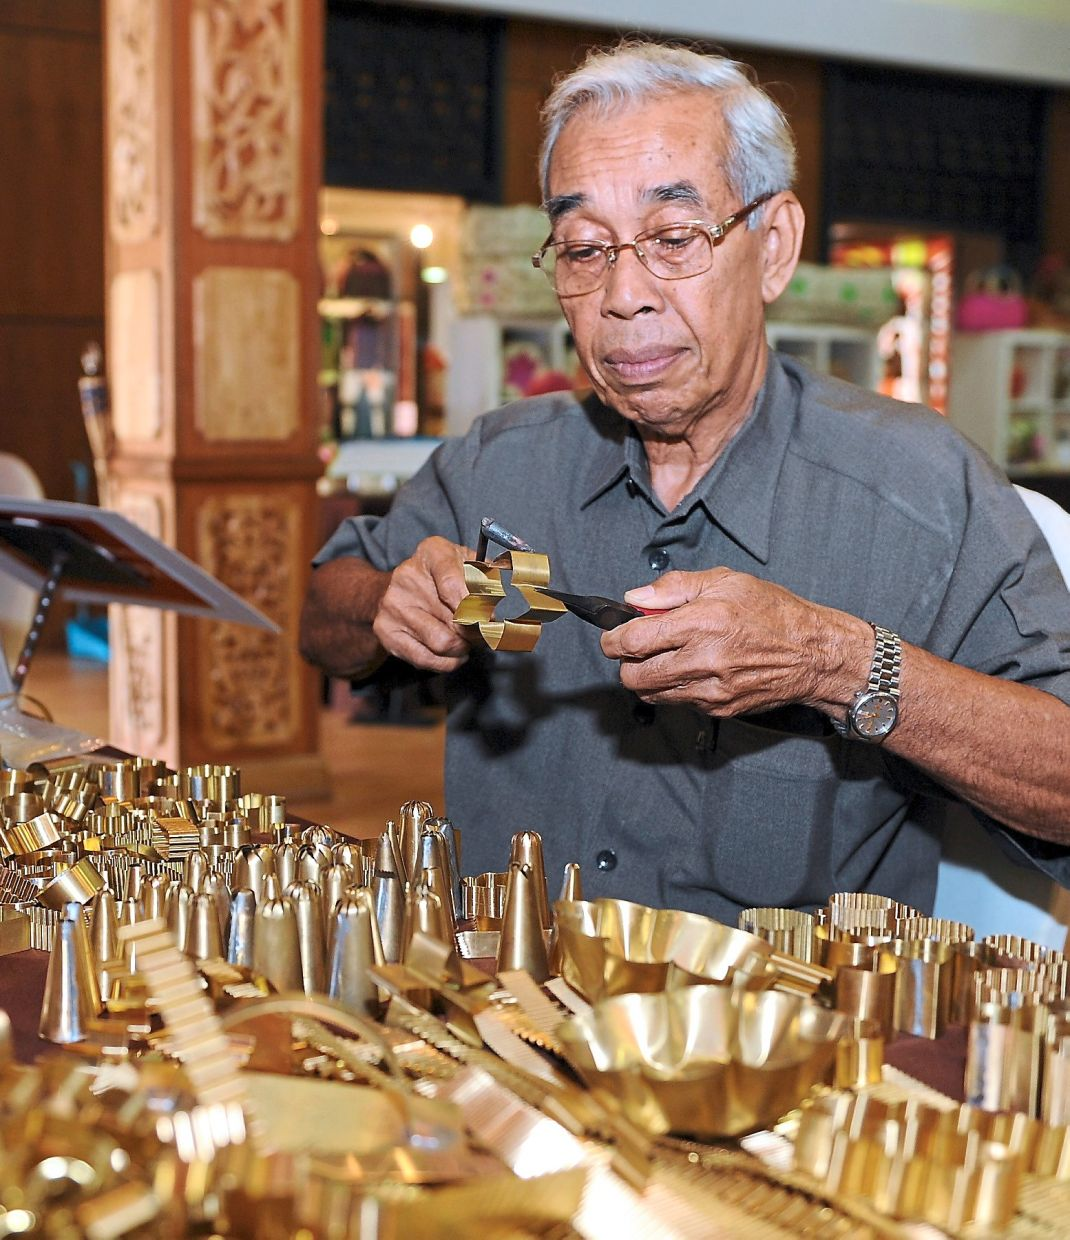 All Mohd Yusof needs is 10 minutes to whip up a simple biscuit mould or cookie cutter. Photo: Bernama